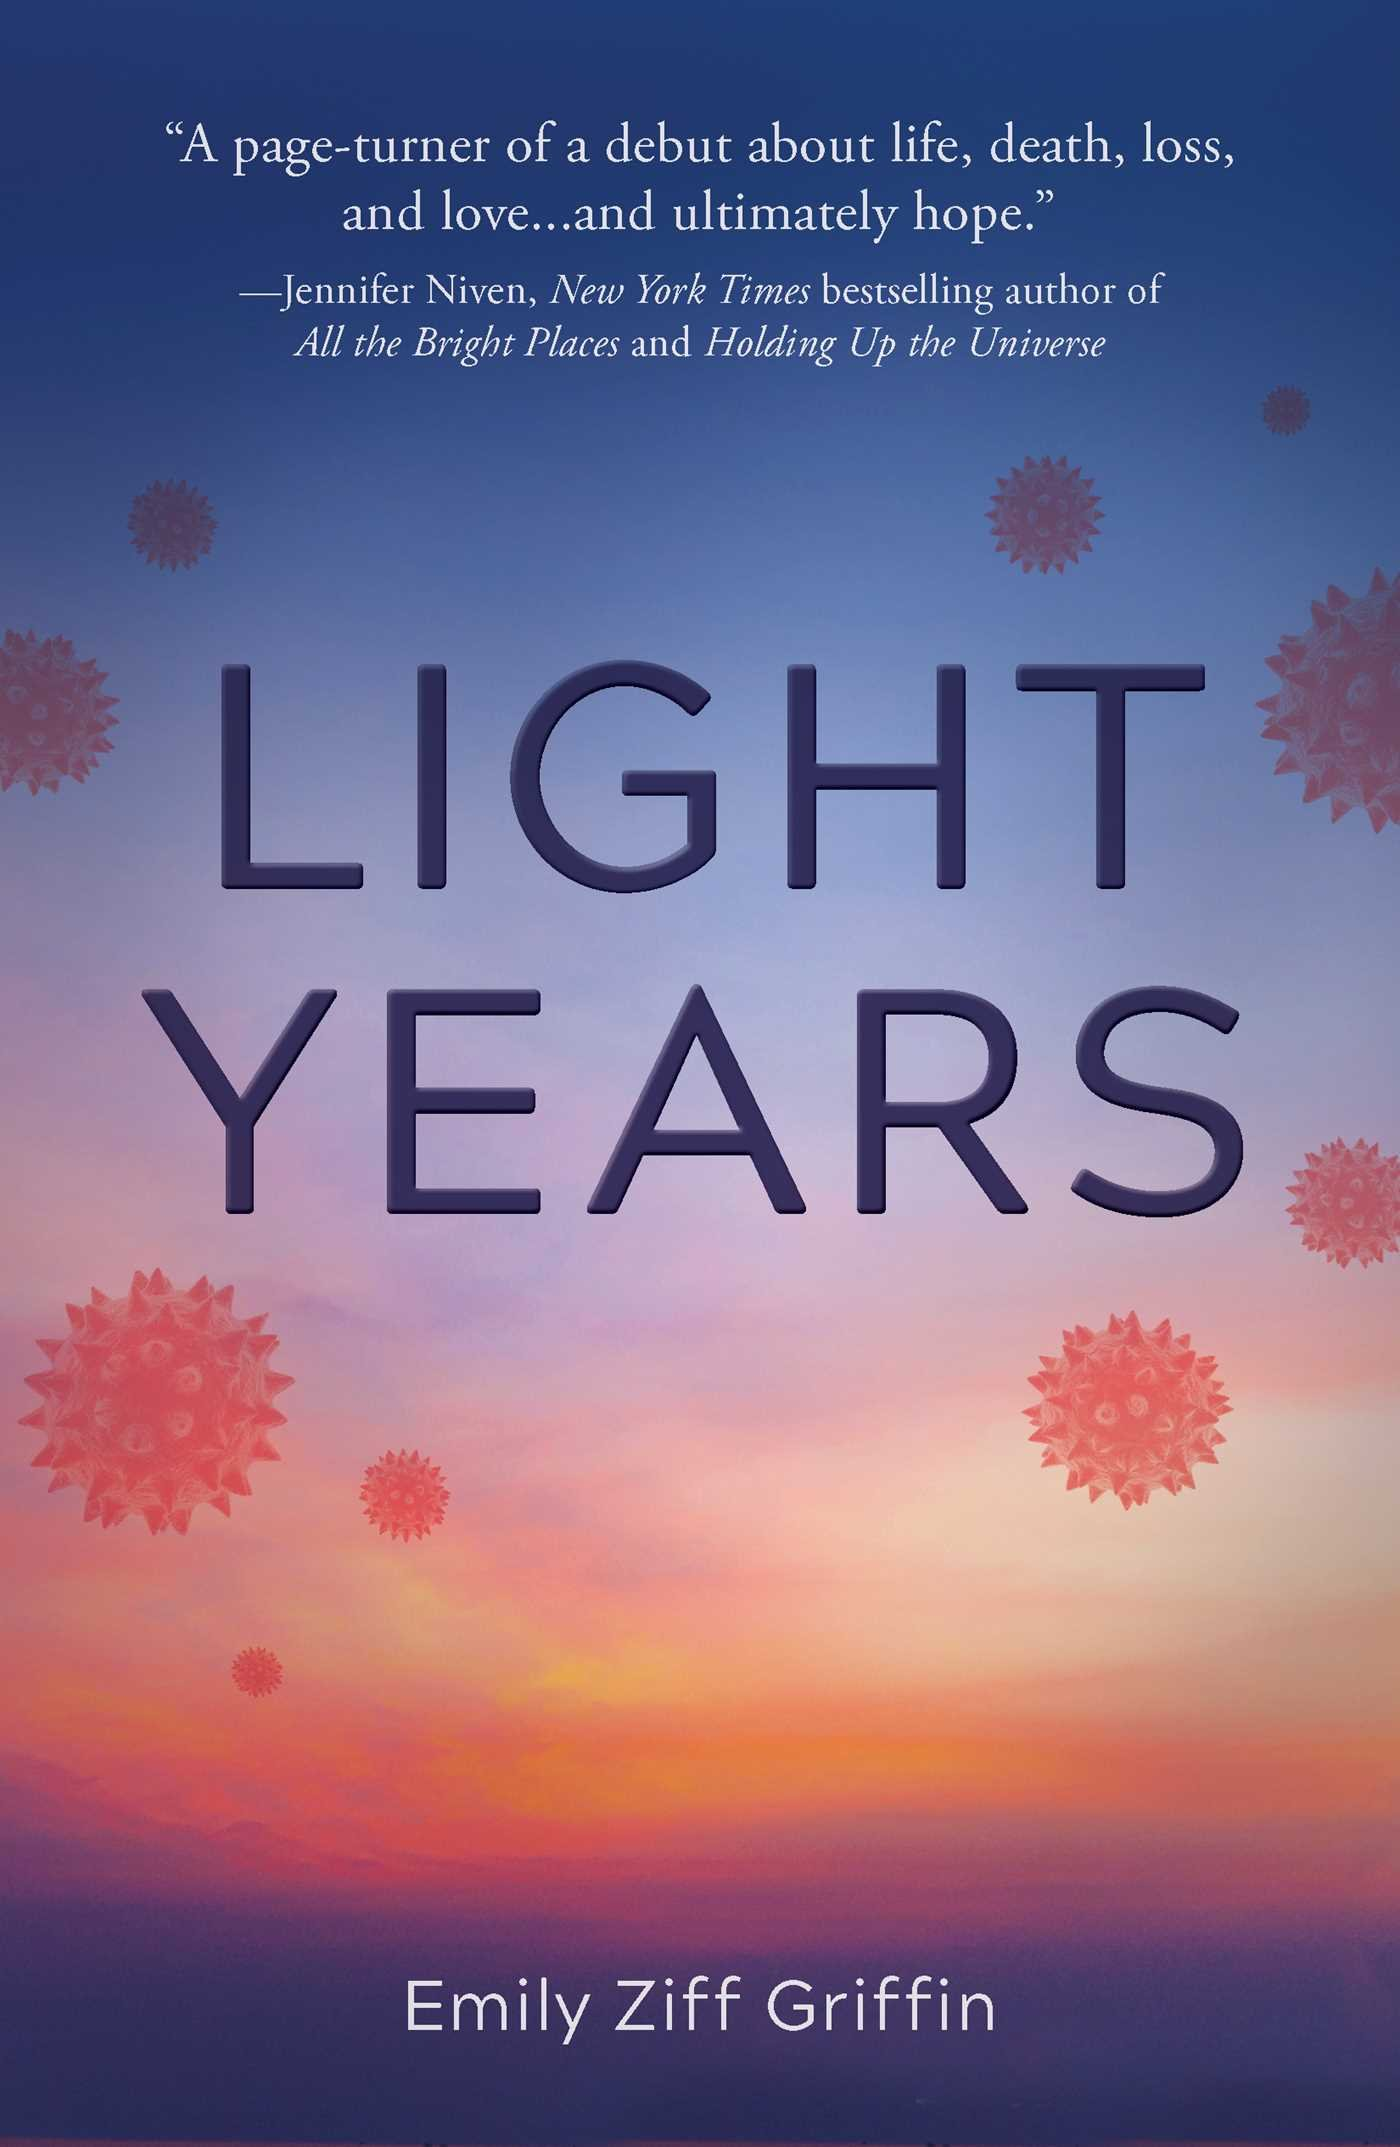 Image result for light years emily ziff griffin